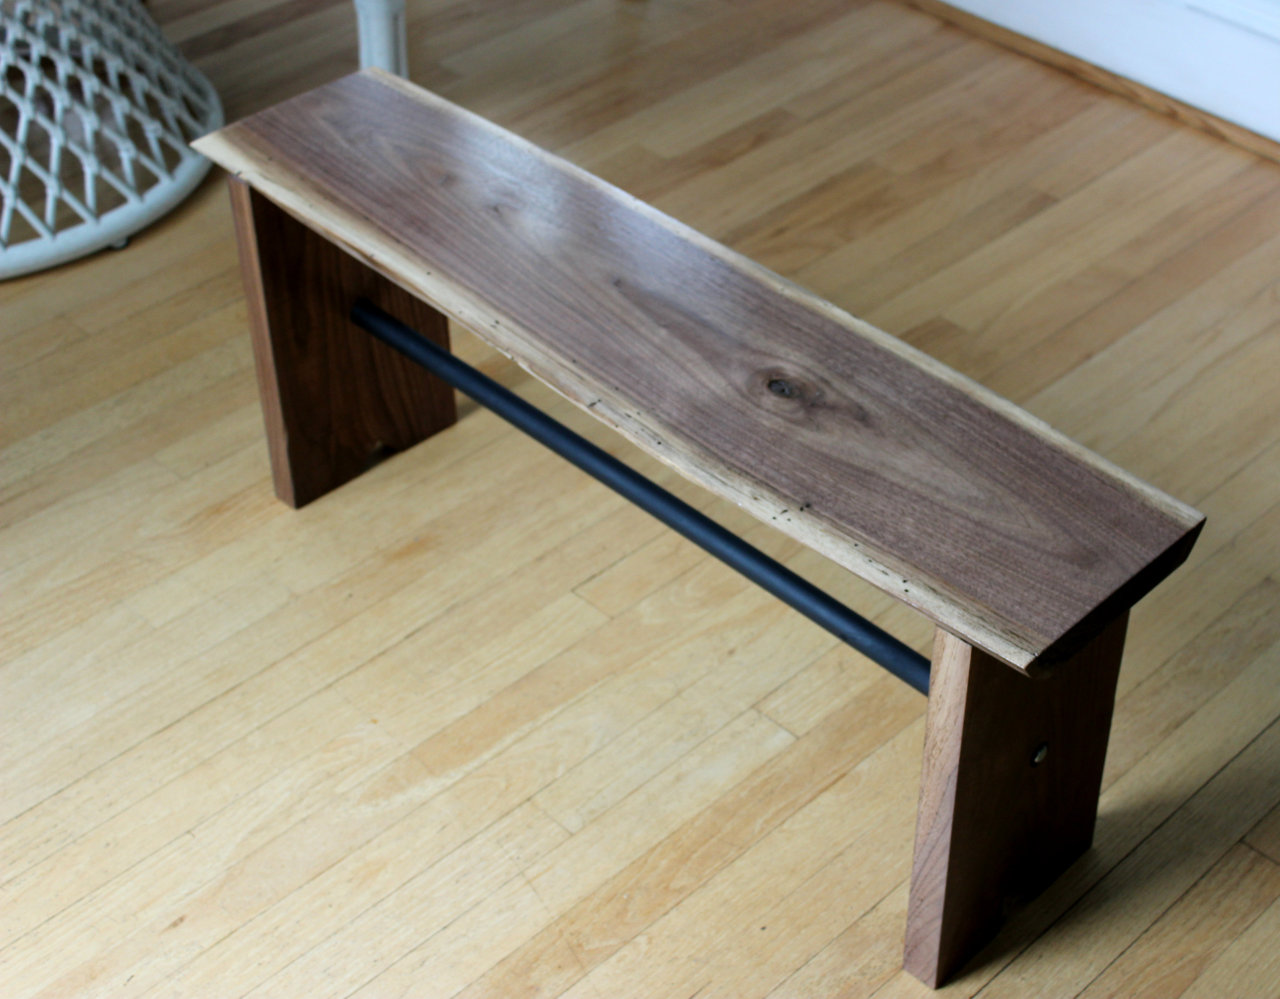 philipgooldfurniture:  I've had this piece of Walnut for a few months now and finally made the decision to make a bench with it. The legs are solid Walnut as well. I put sort of a contemporary spin on it with the dowel underneath finished in a flat black.